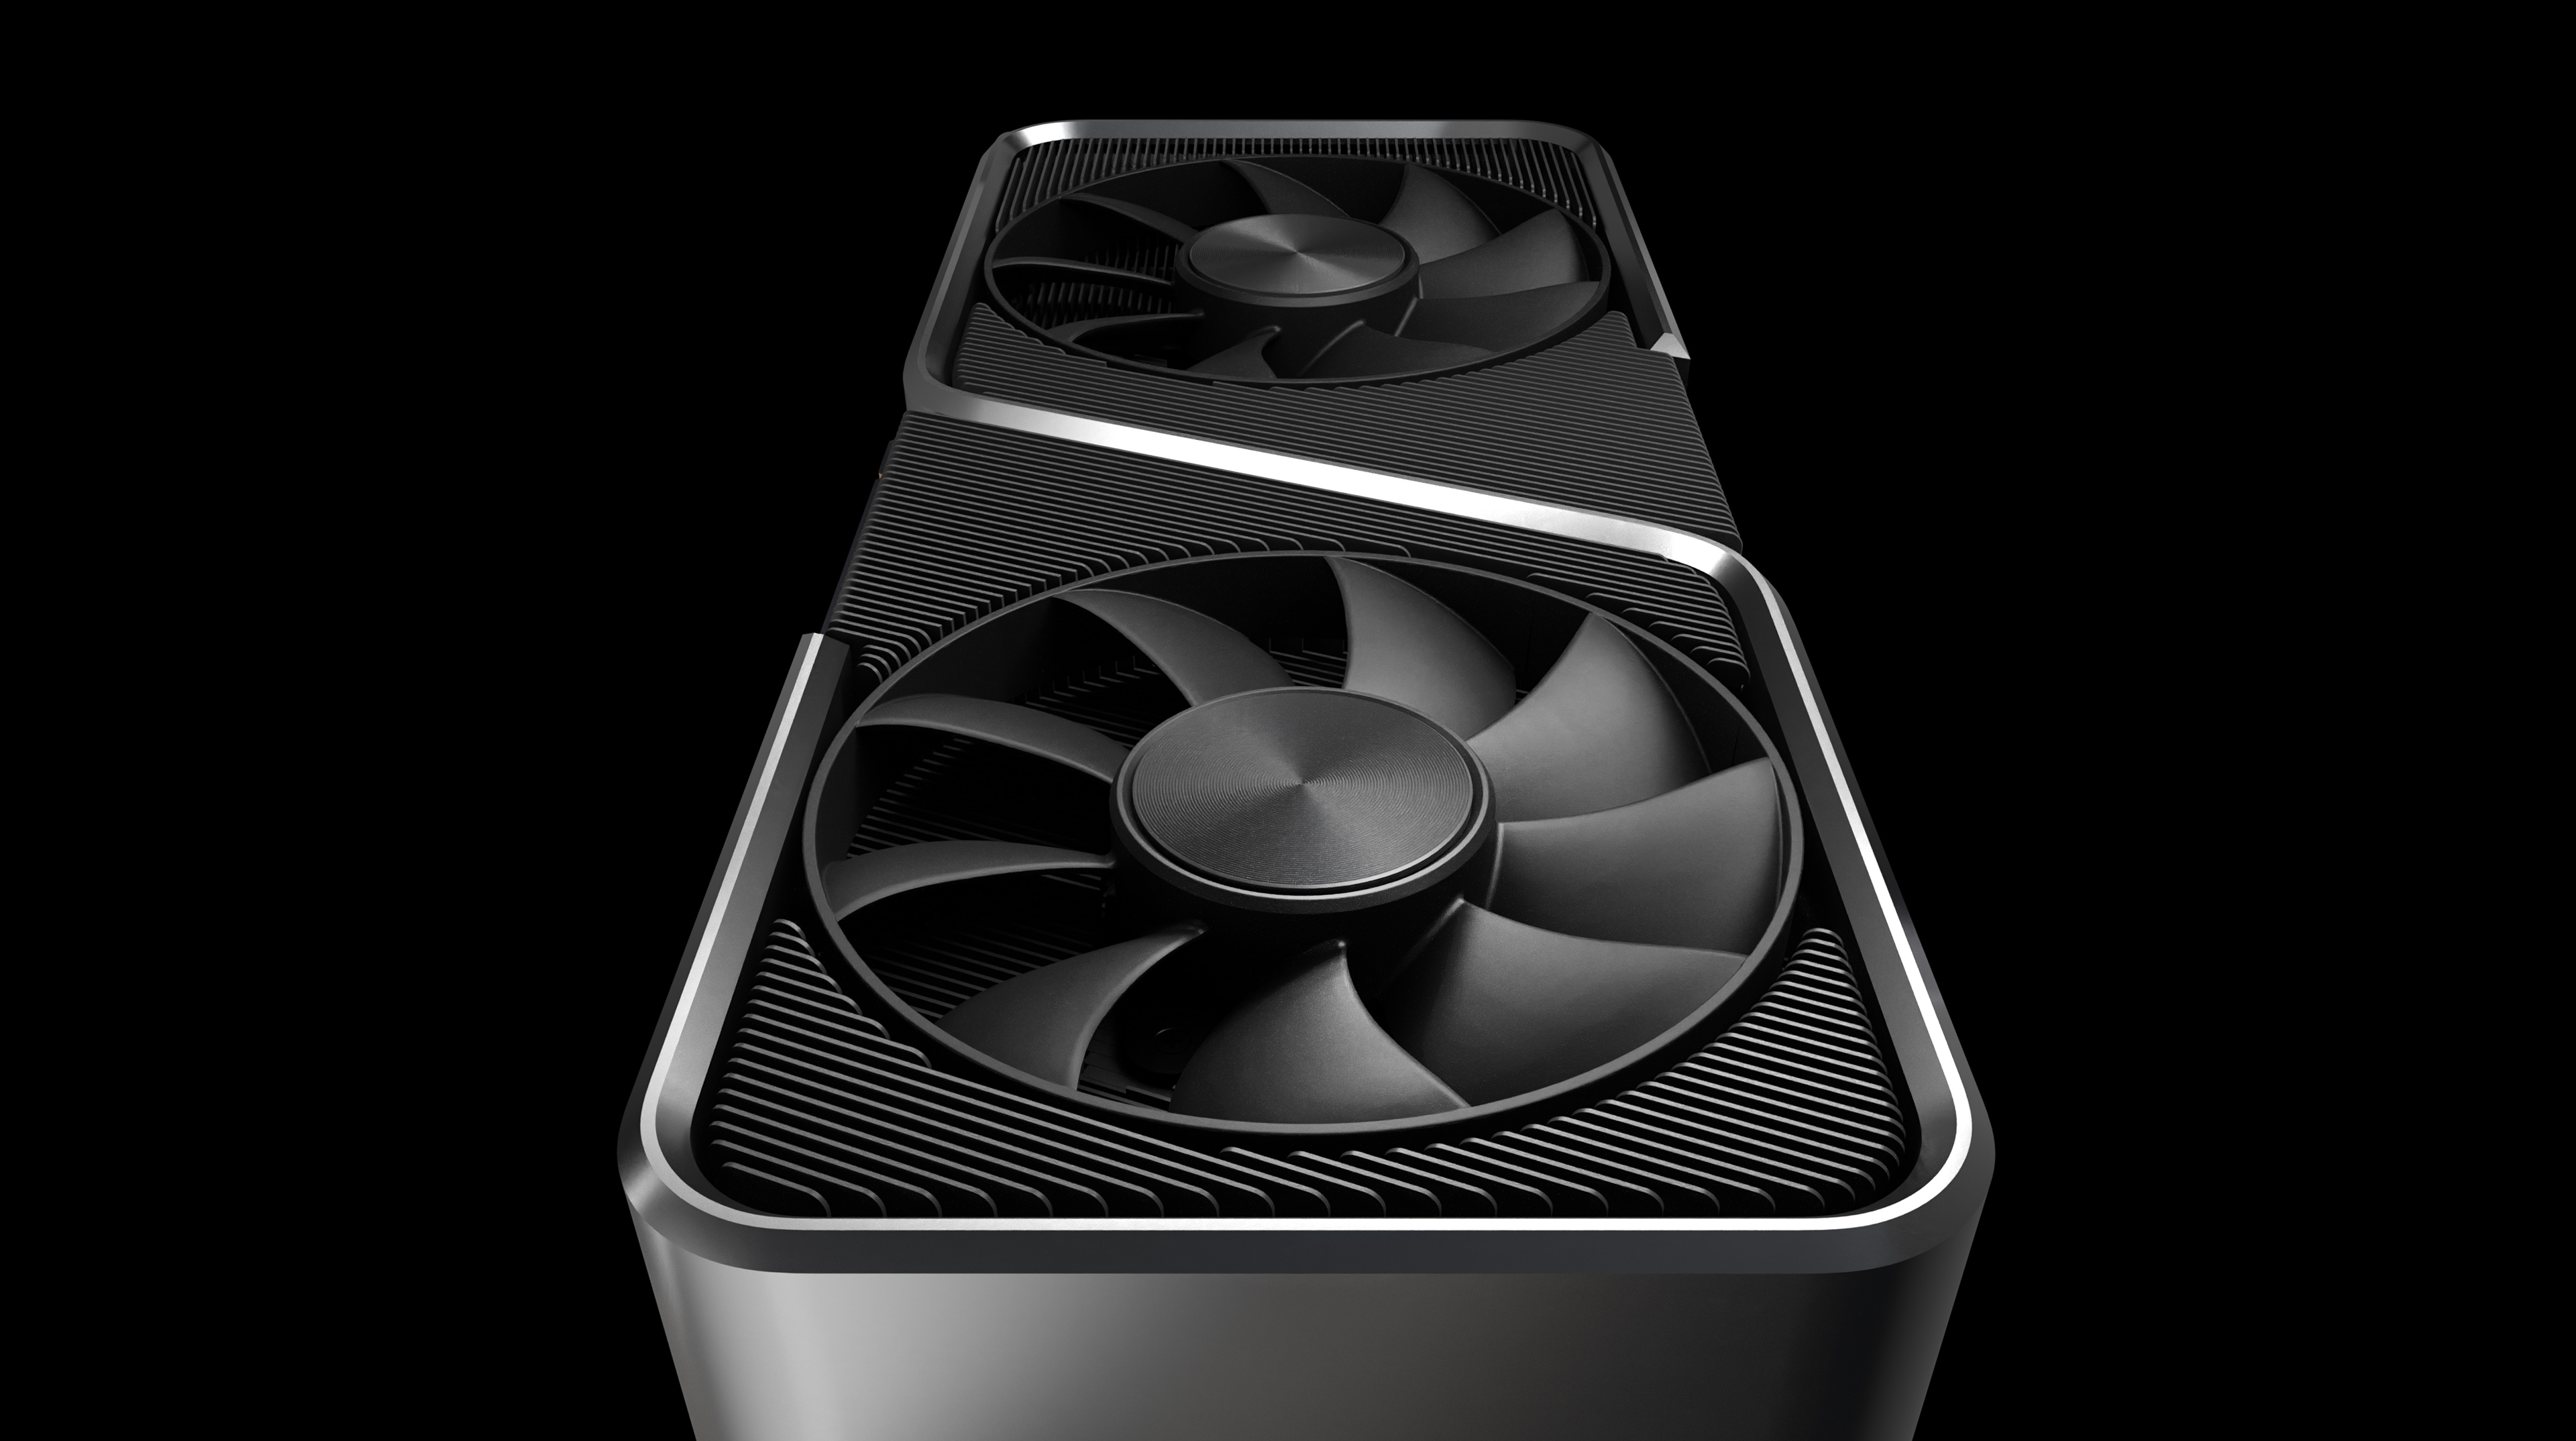 geforce rtx 3070 product gallery full screen 3840 1